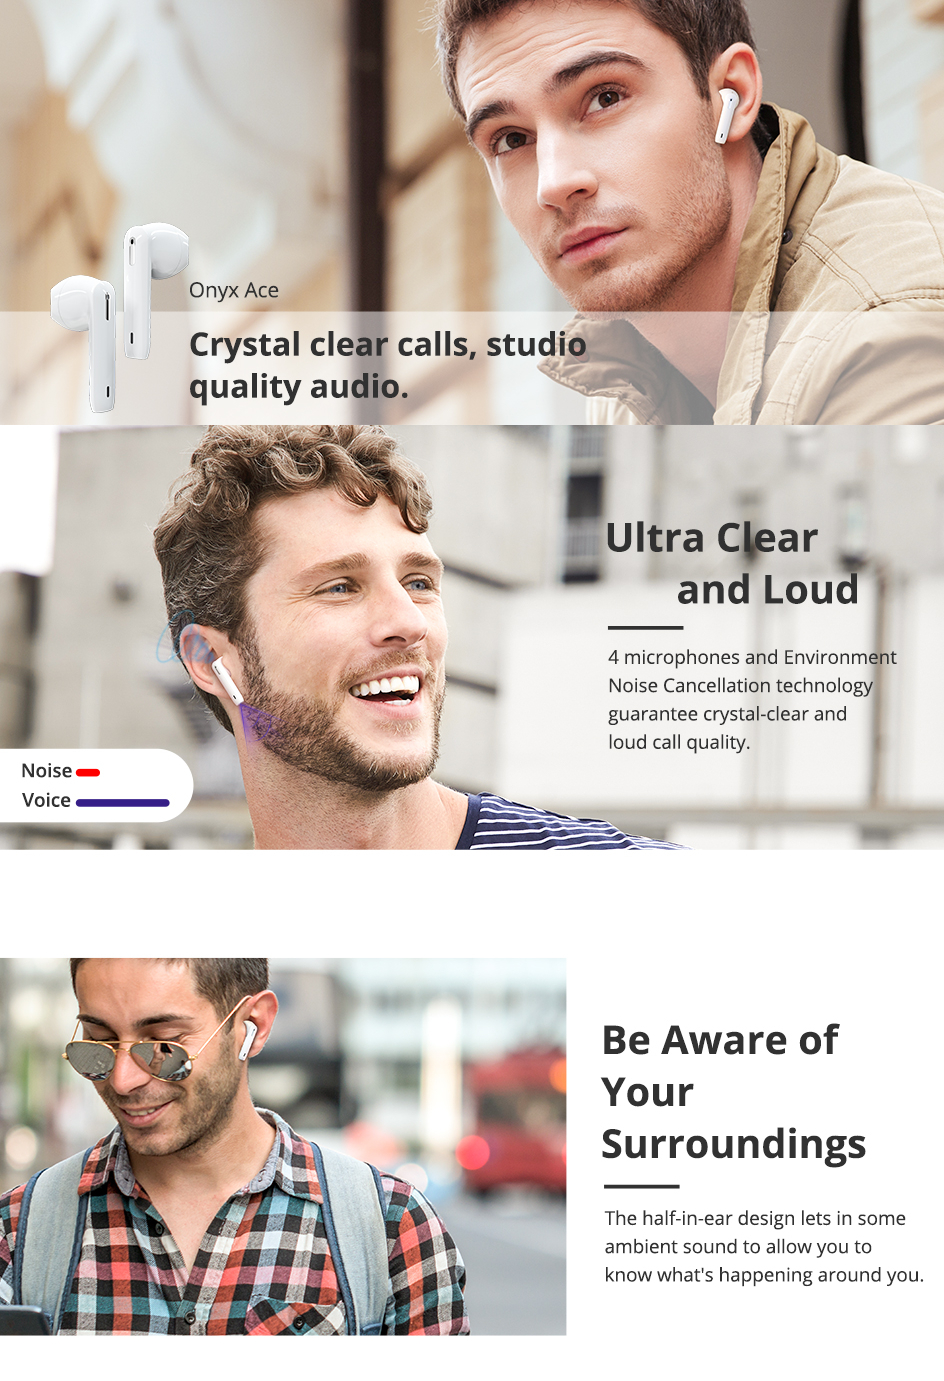 Tronsmart Onyx Ace TWS bluetooth 5.0 Earphone Wireless Headphone QCC3020 Apt Noise Cancelling Touch Headset with 4 Mic